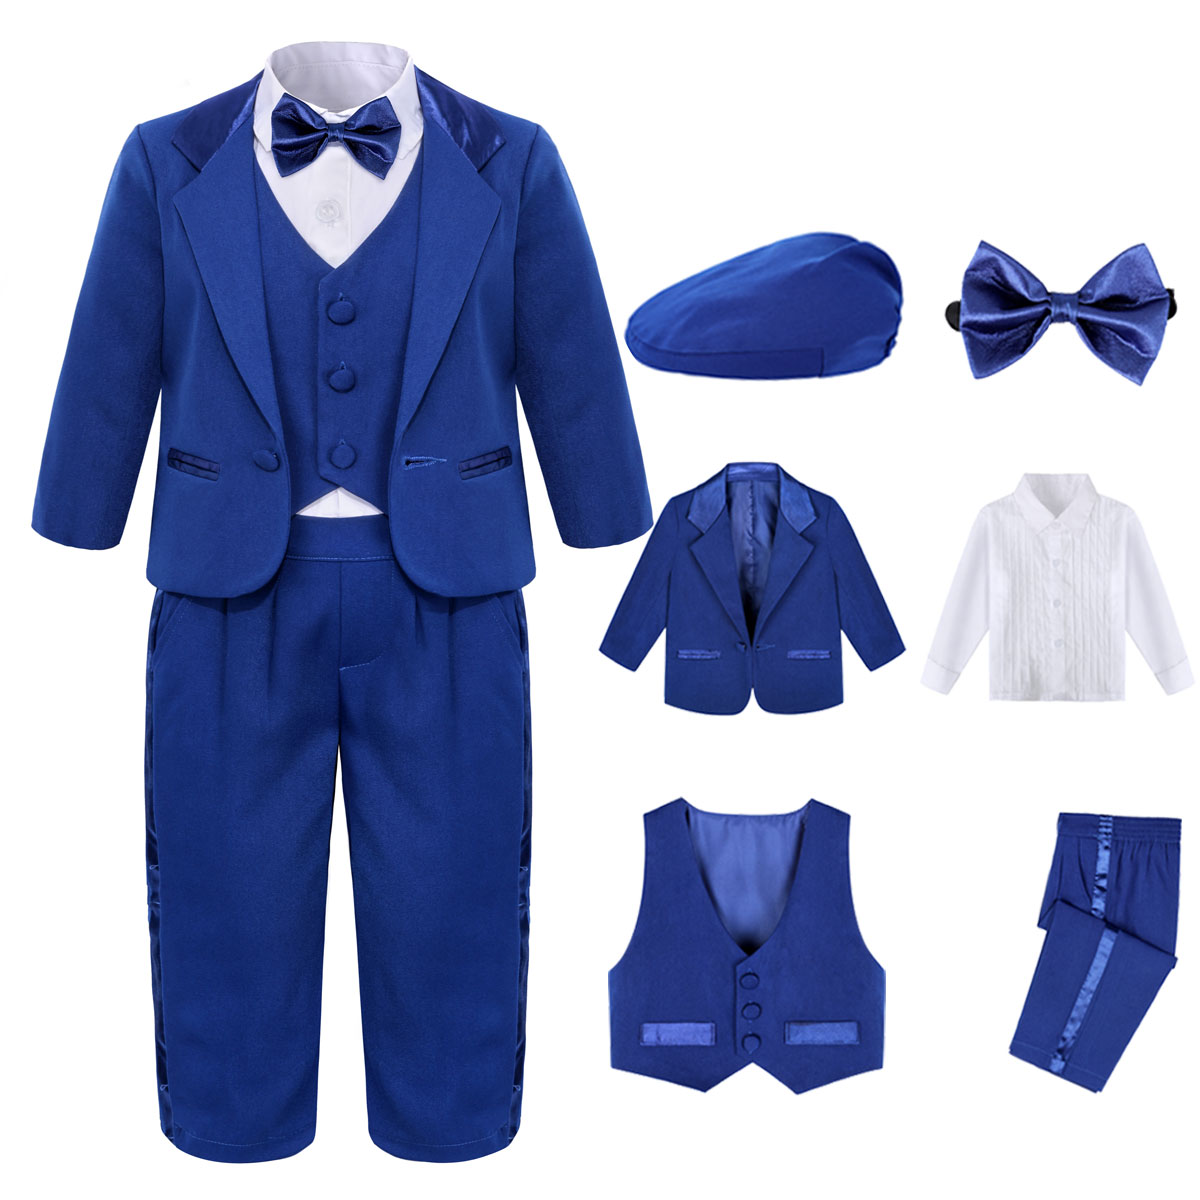 Baby Boy Wedding Suit Infant Formal First Birthday Tuxedo Toddler Photography Outfits Ceremony Blessing Party Costume 4pcs 1